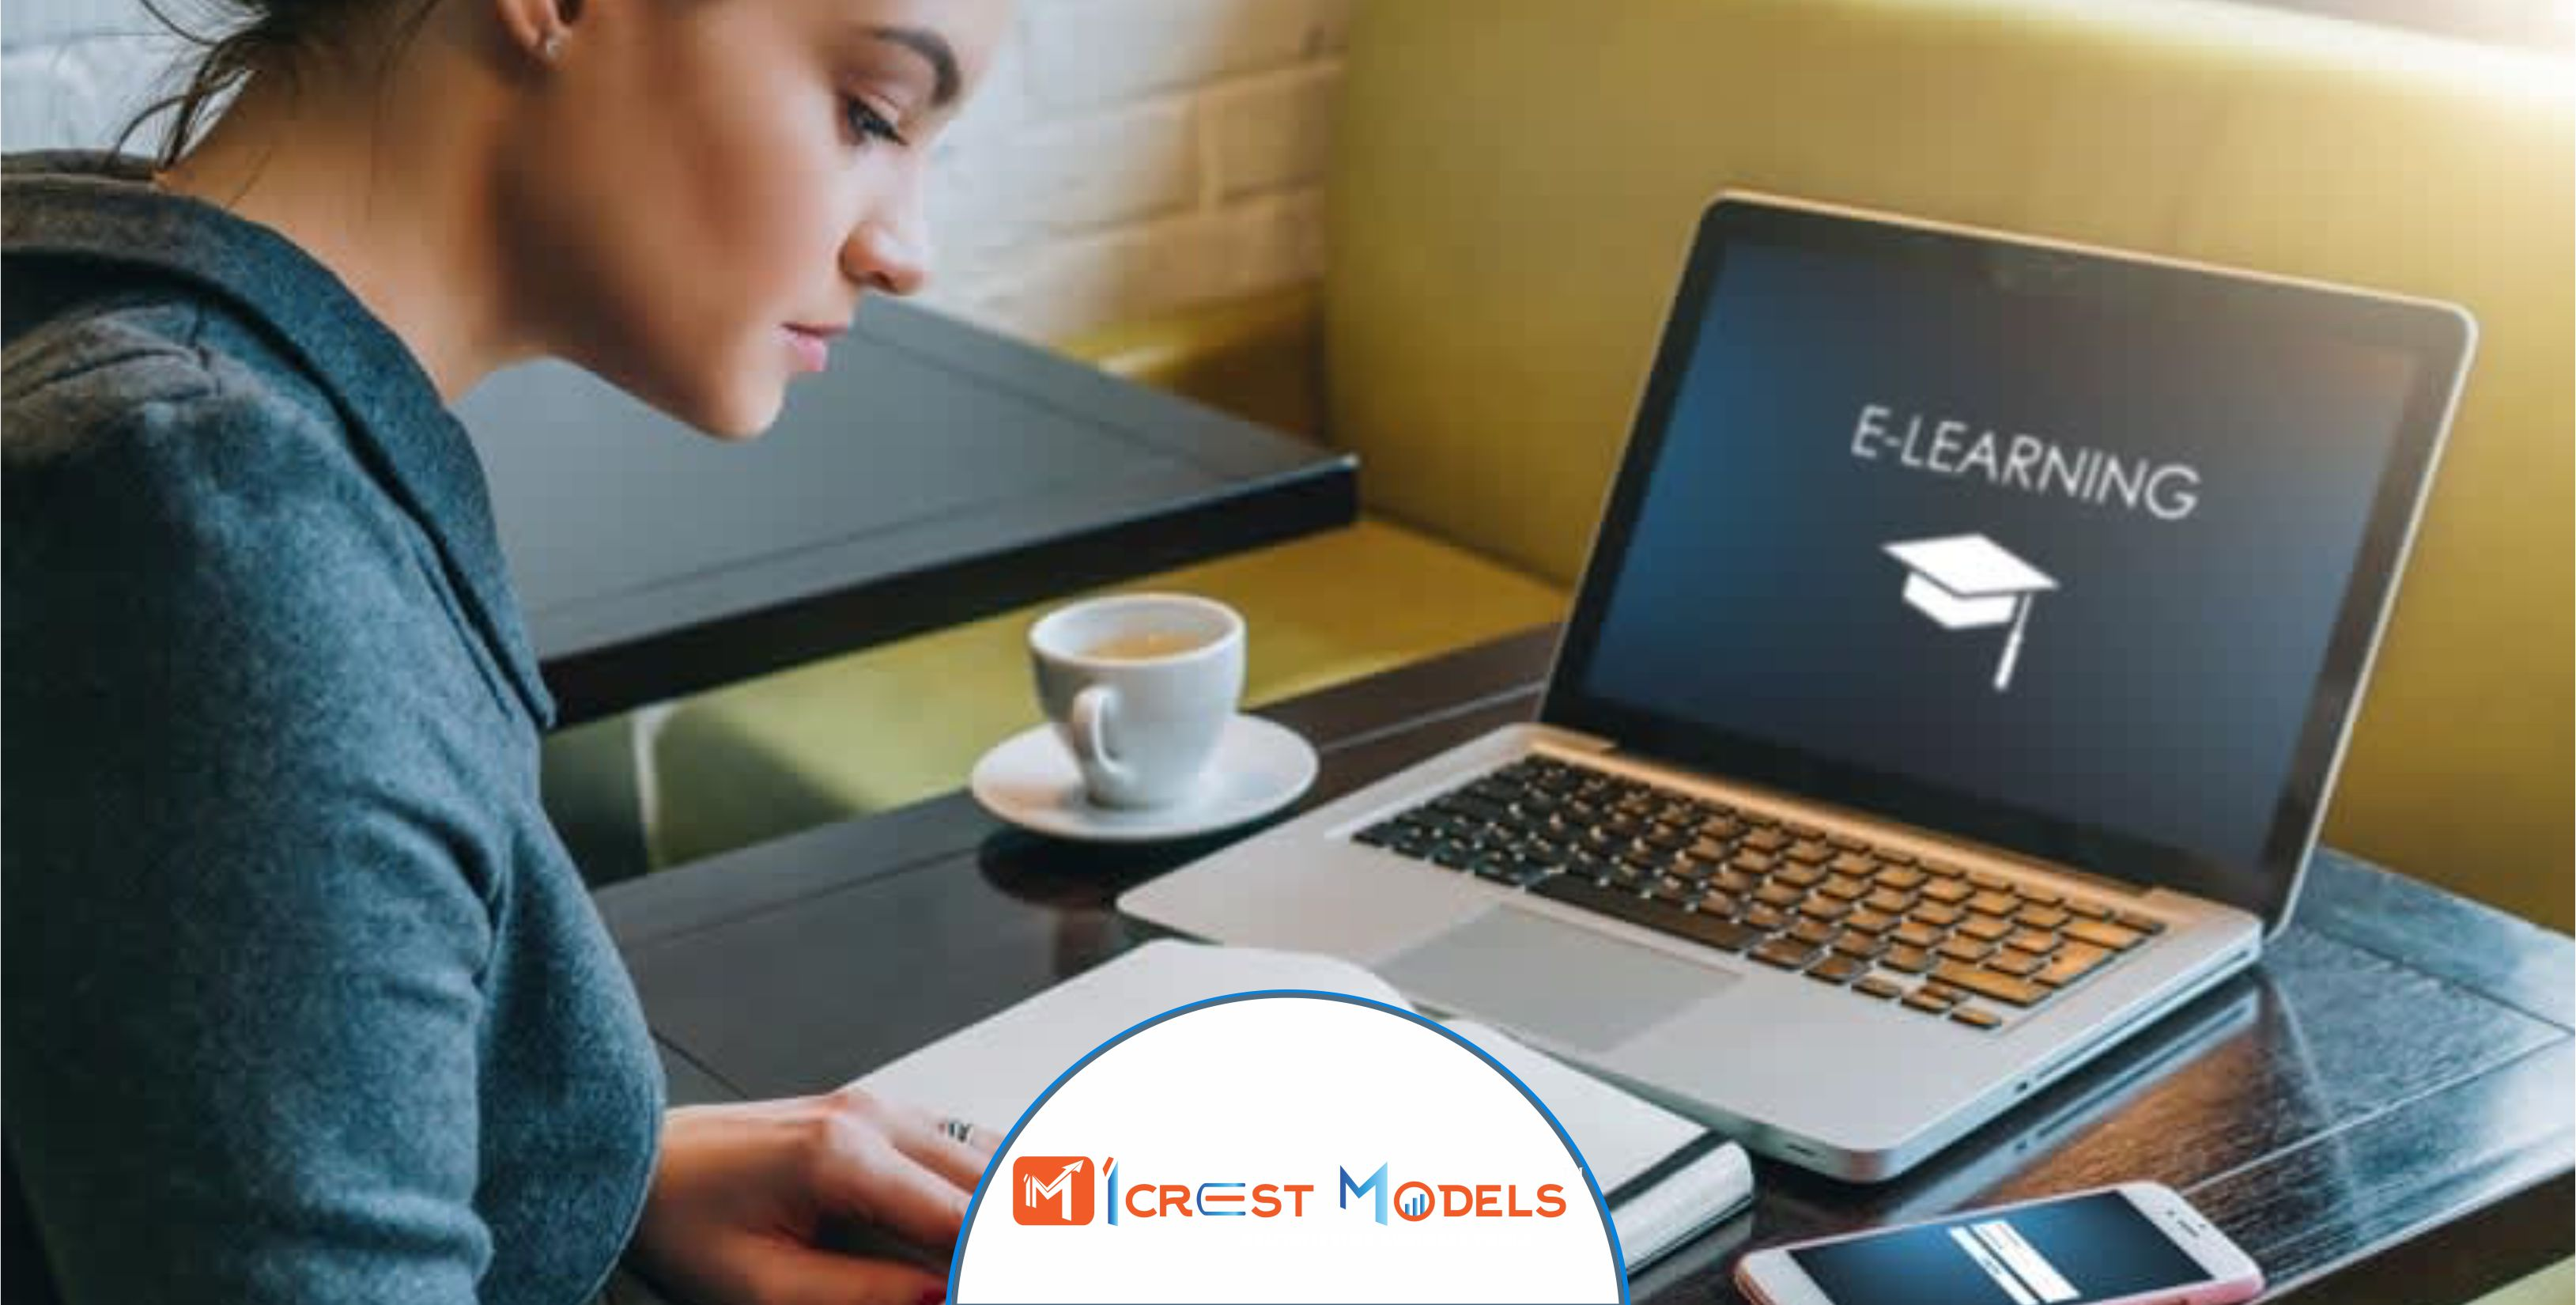 E- Learning as Business